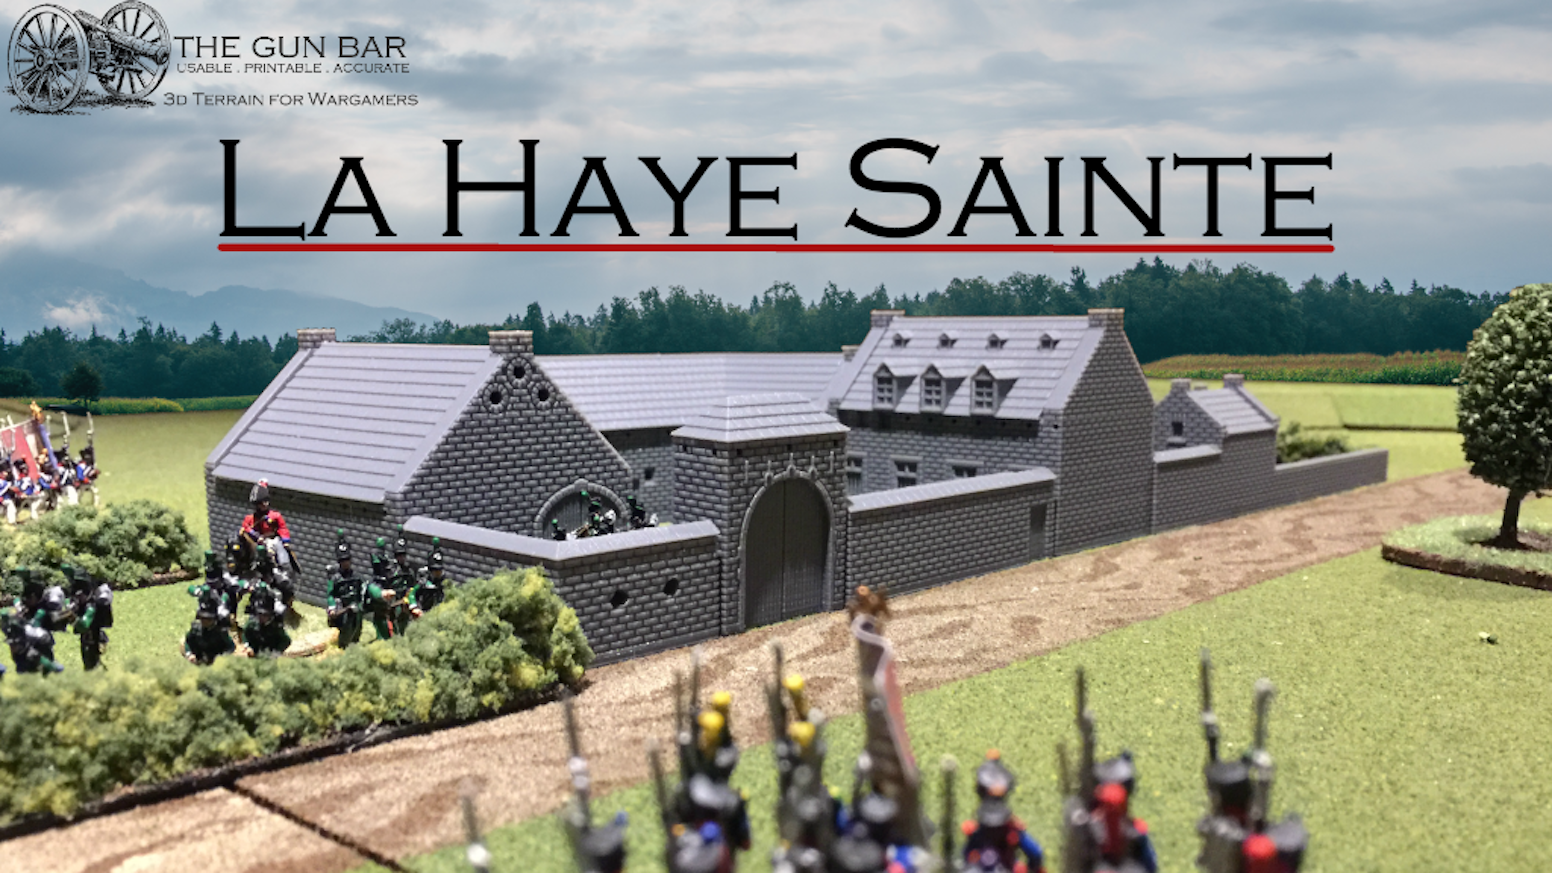 La Haye Sainte - 3D printable terrain for Waterloo by Anthony Selley